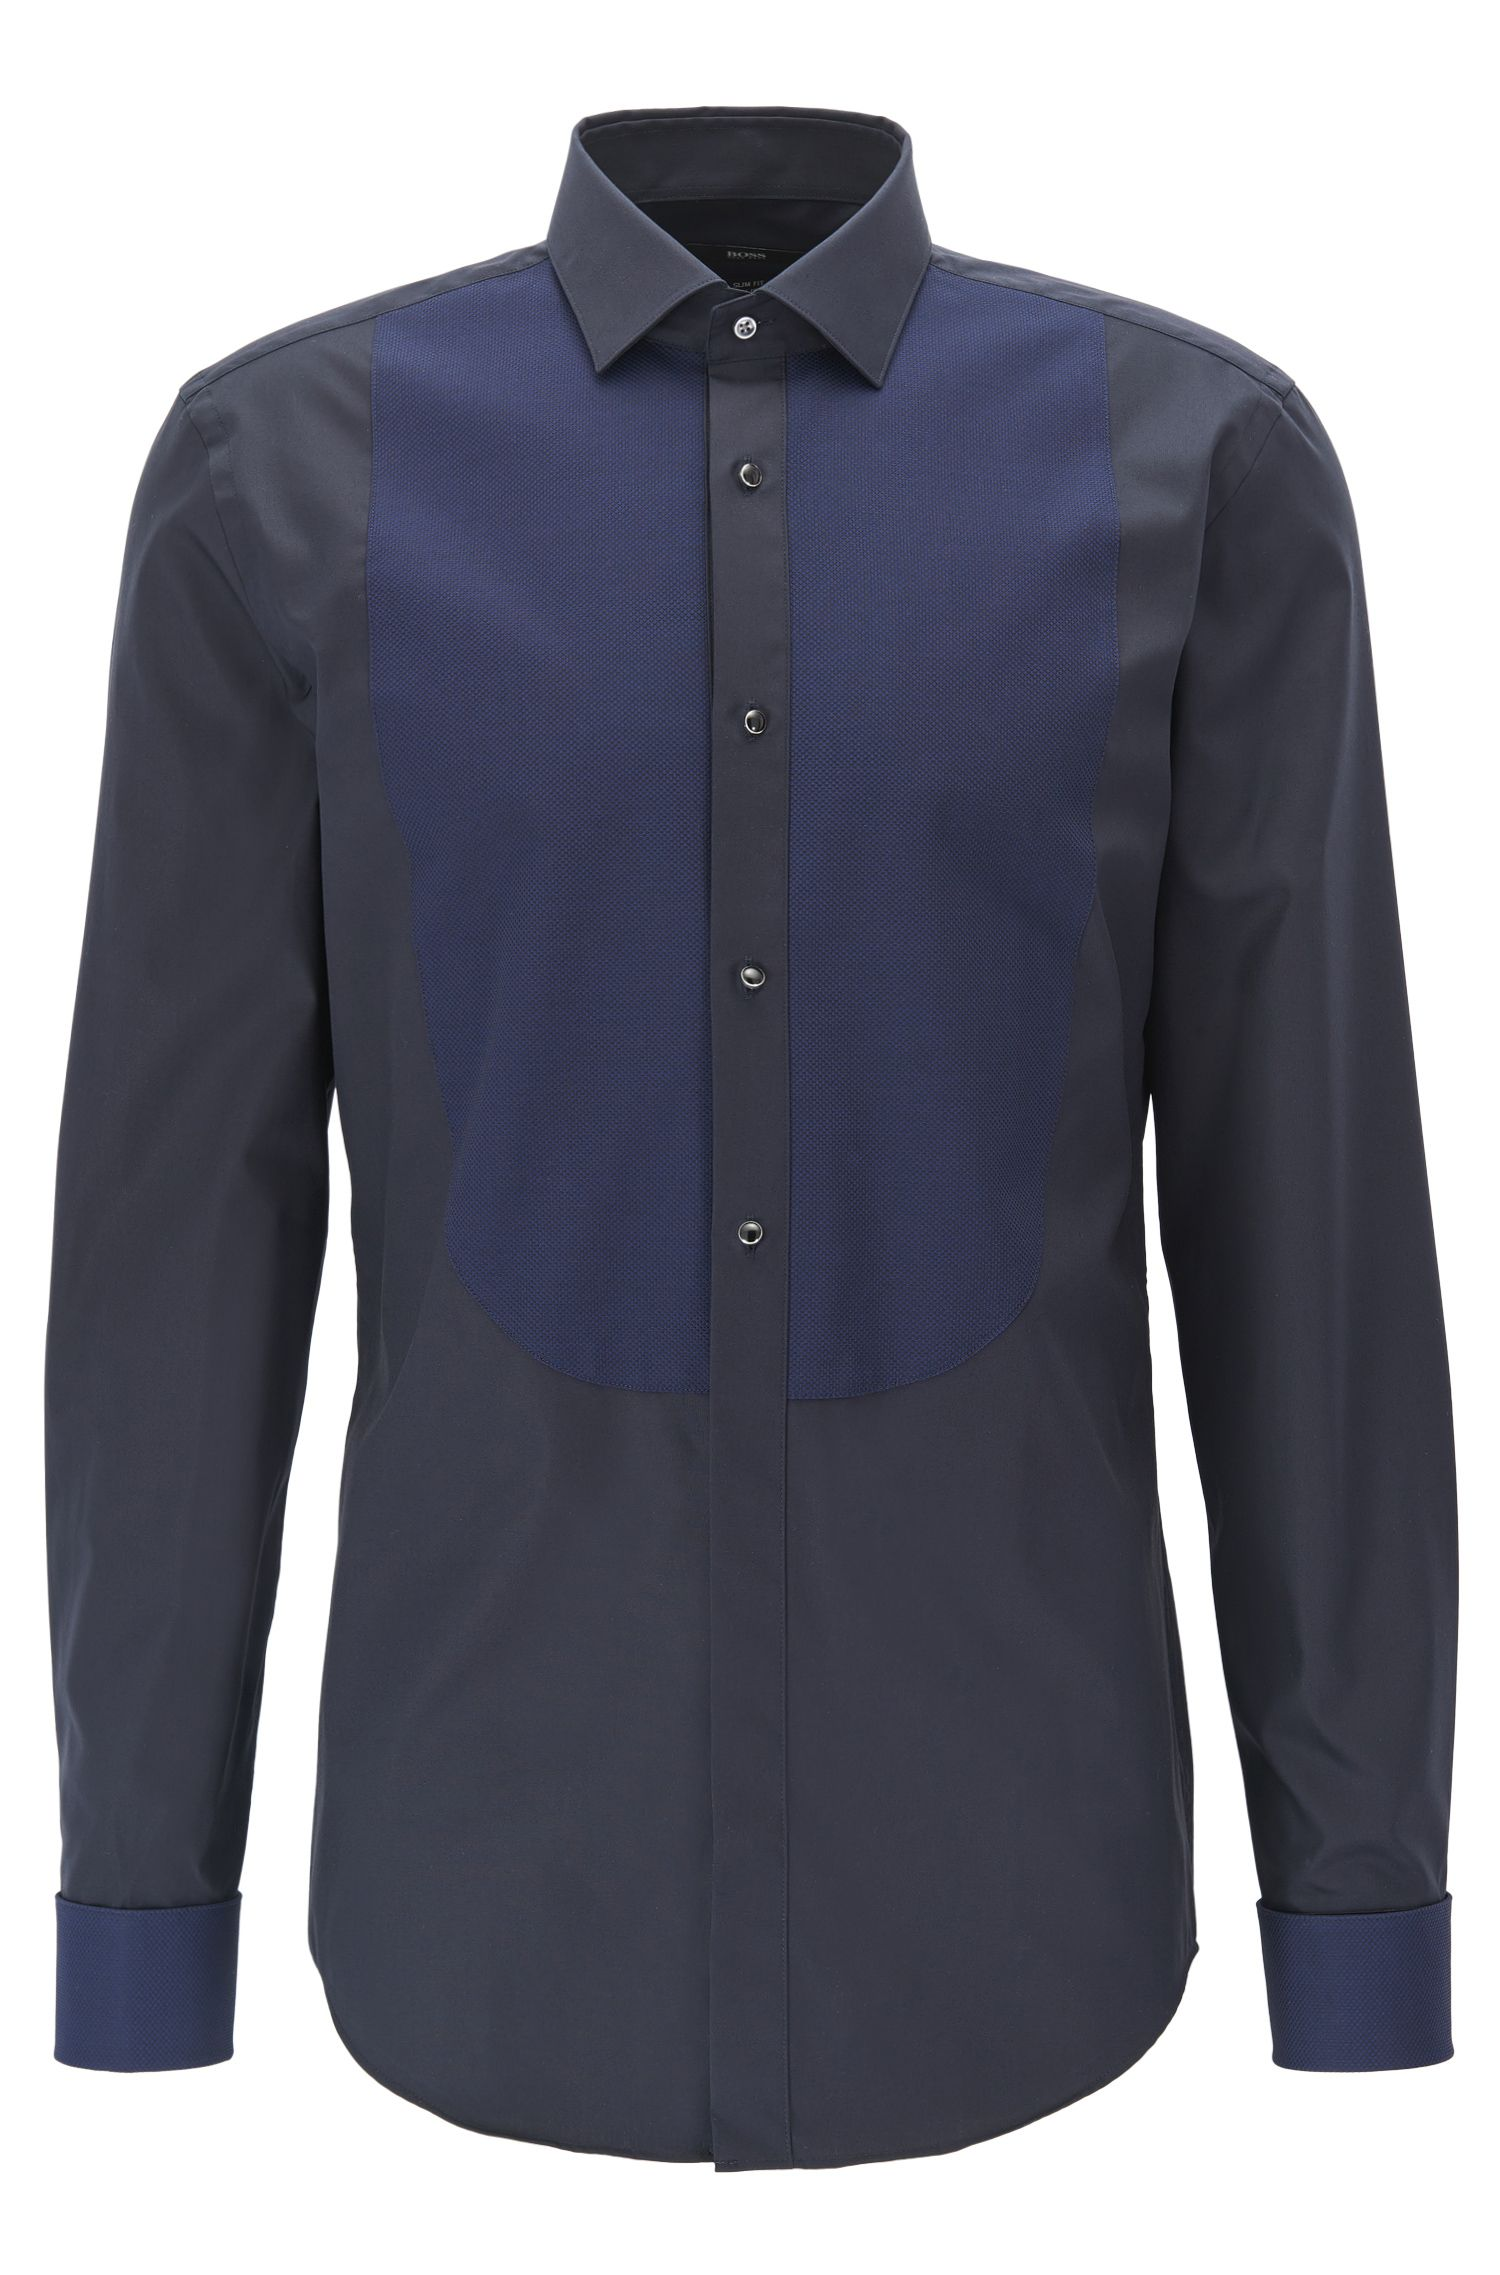 Two-Tone Tuxedo Shirt, Slim Fit | Jant